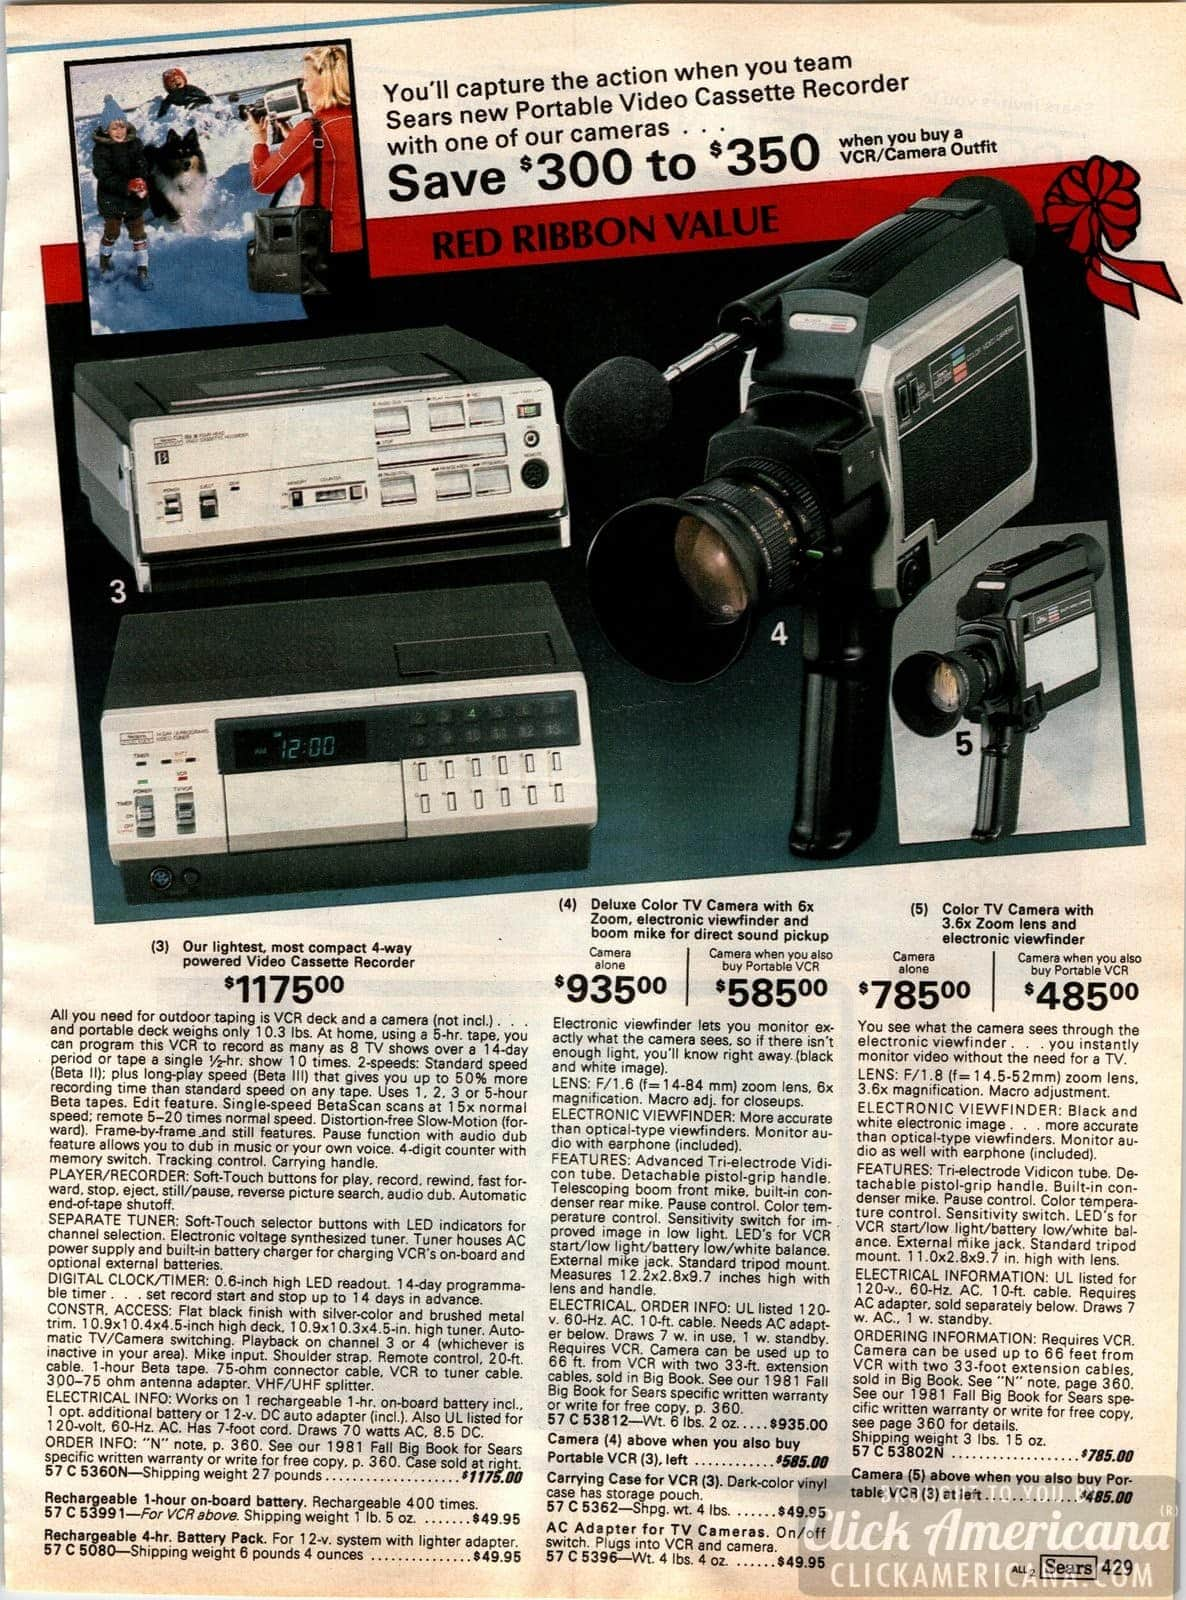 Retro stereos, tech & '80s electronics from the 1981 Sears